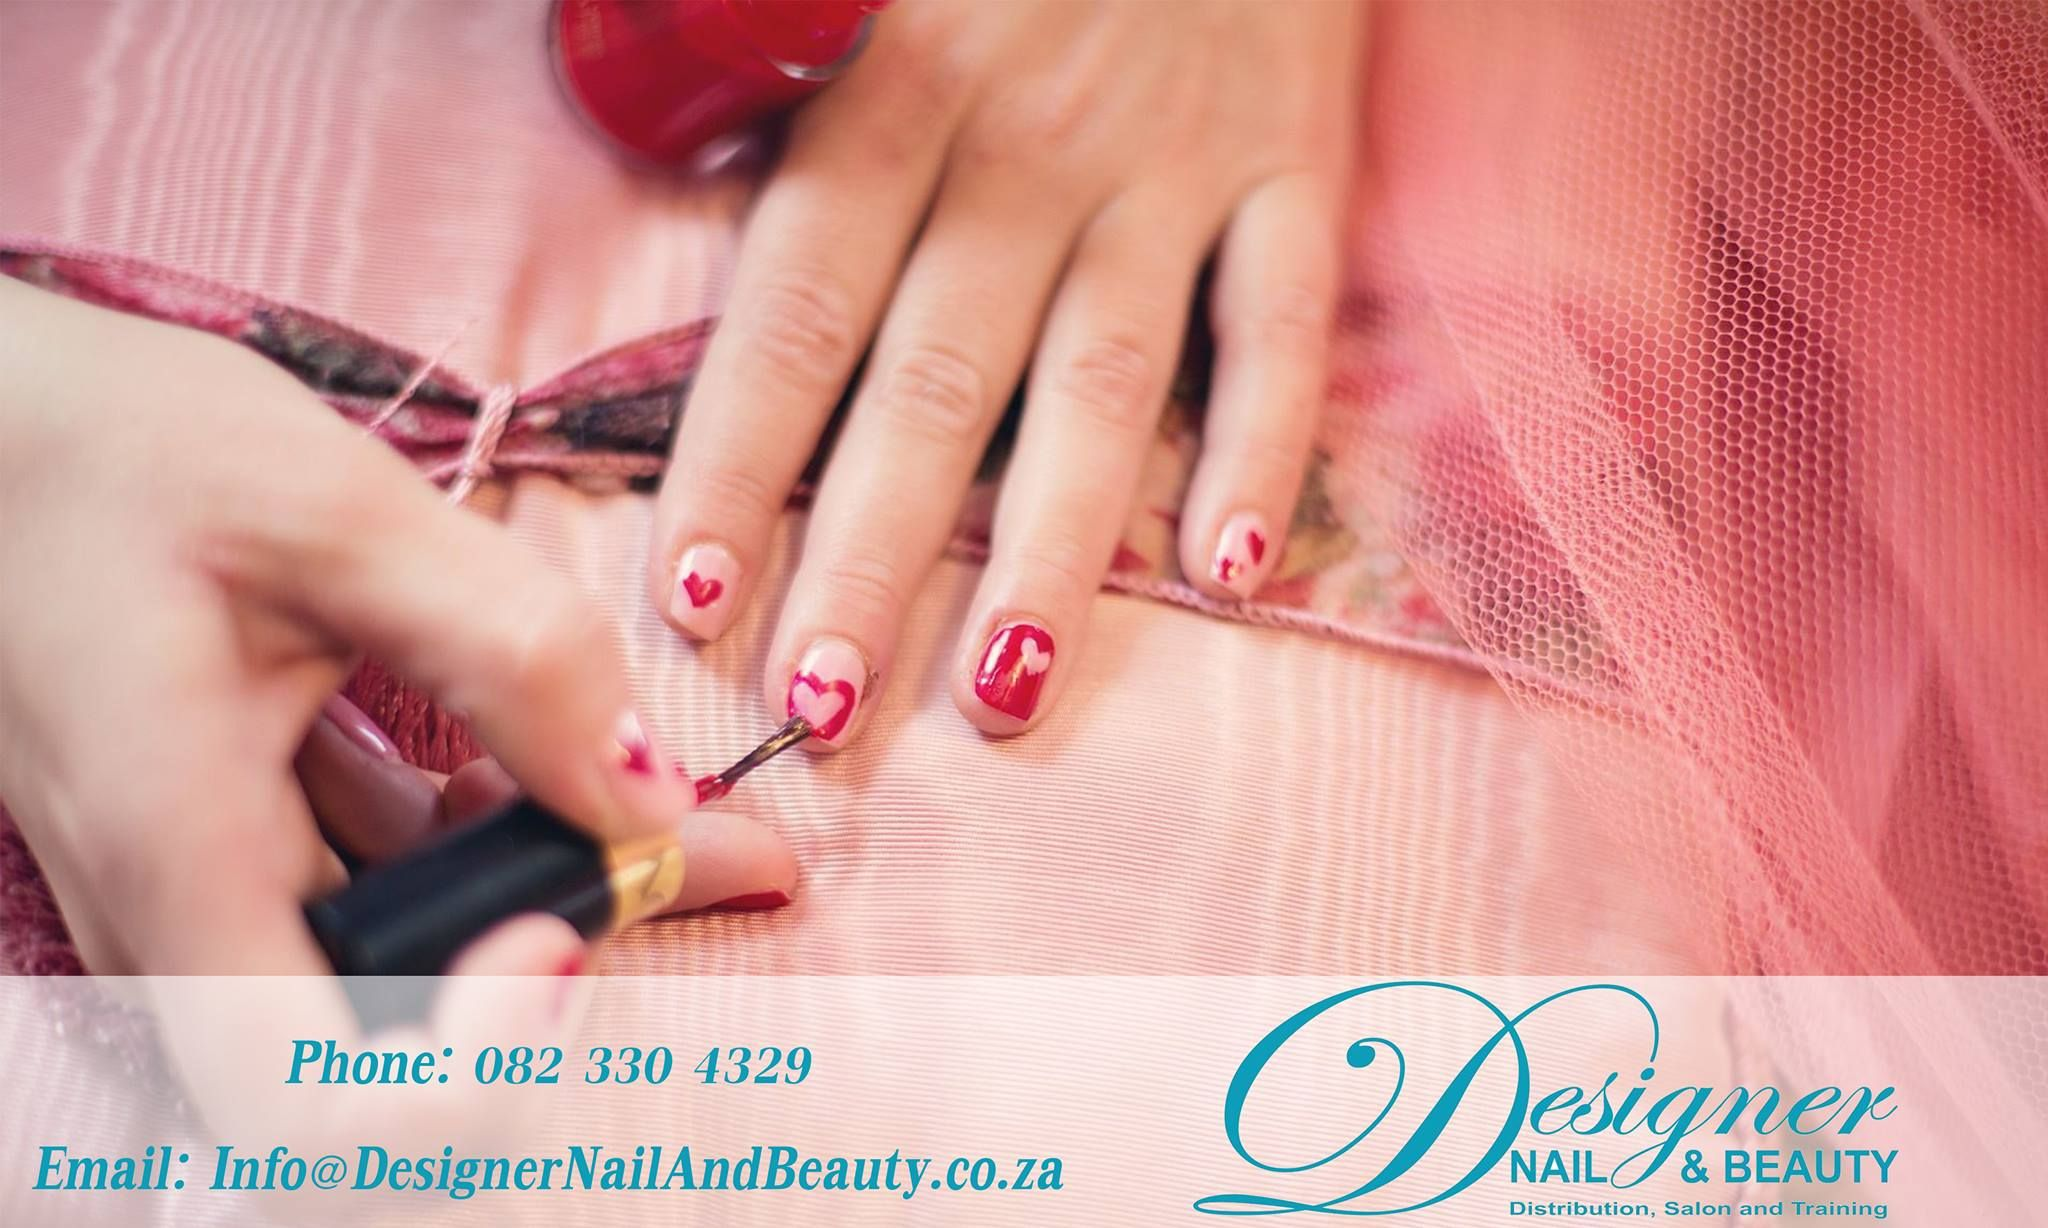 Over at Designer Nail and Beauty, we stock and supply only the best ...